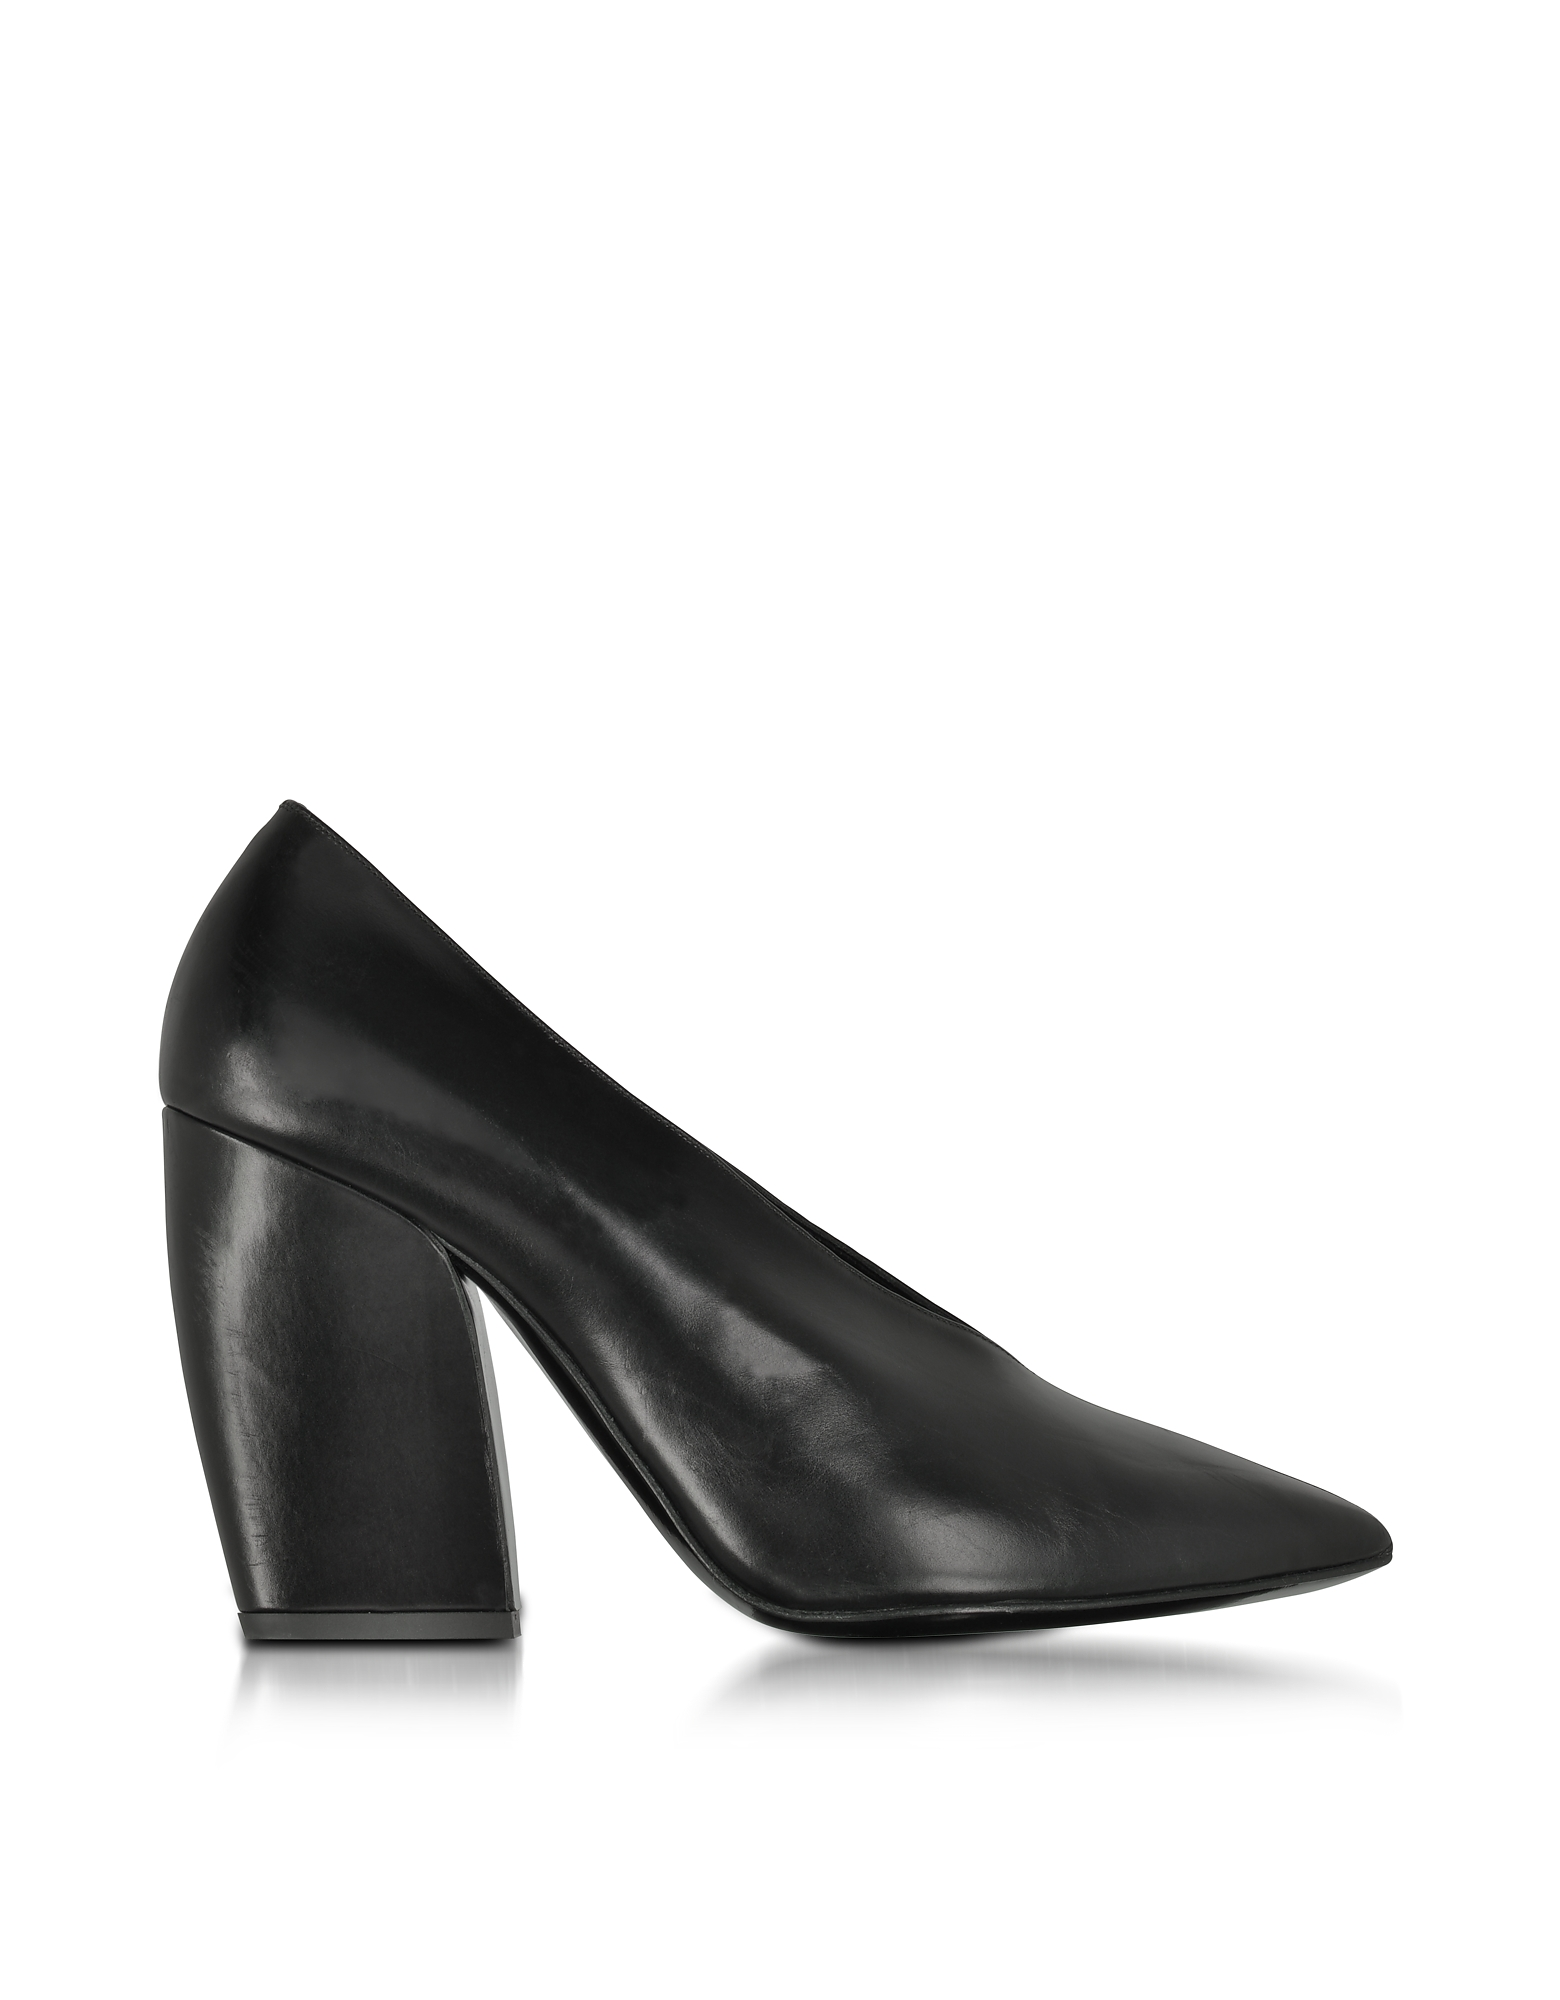 Pierre Hardy Shoes, Paloma Black Leather Pump